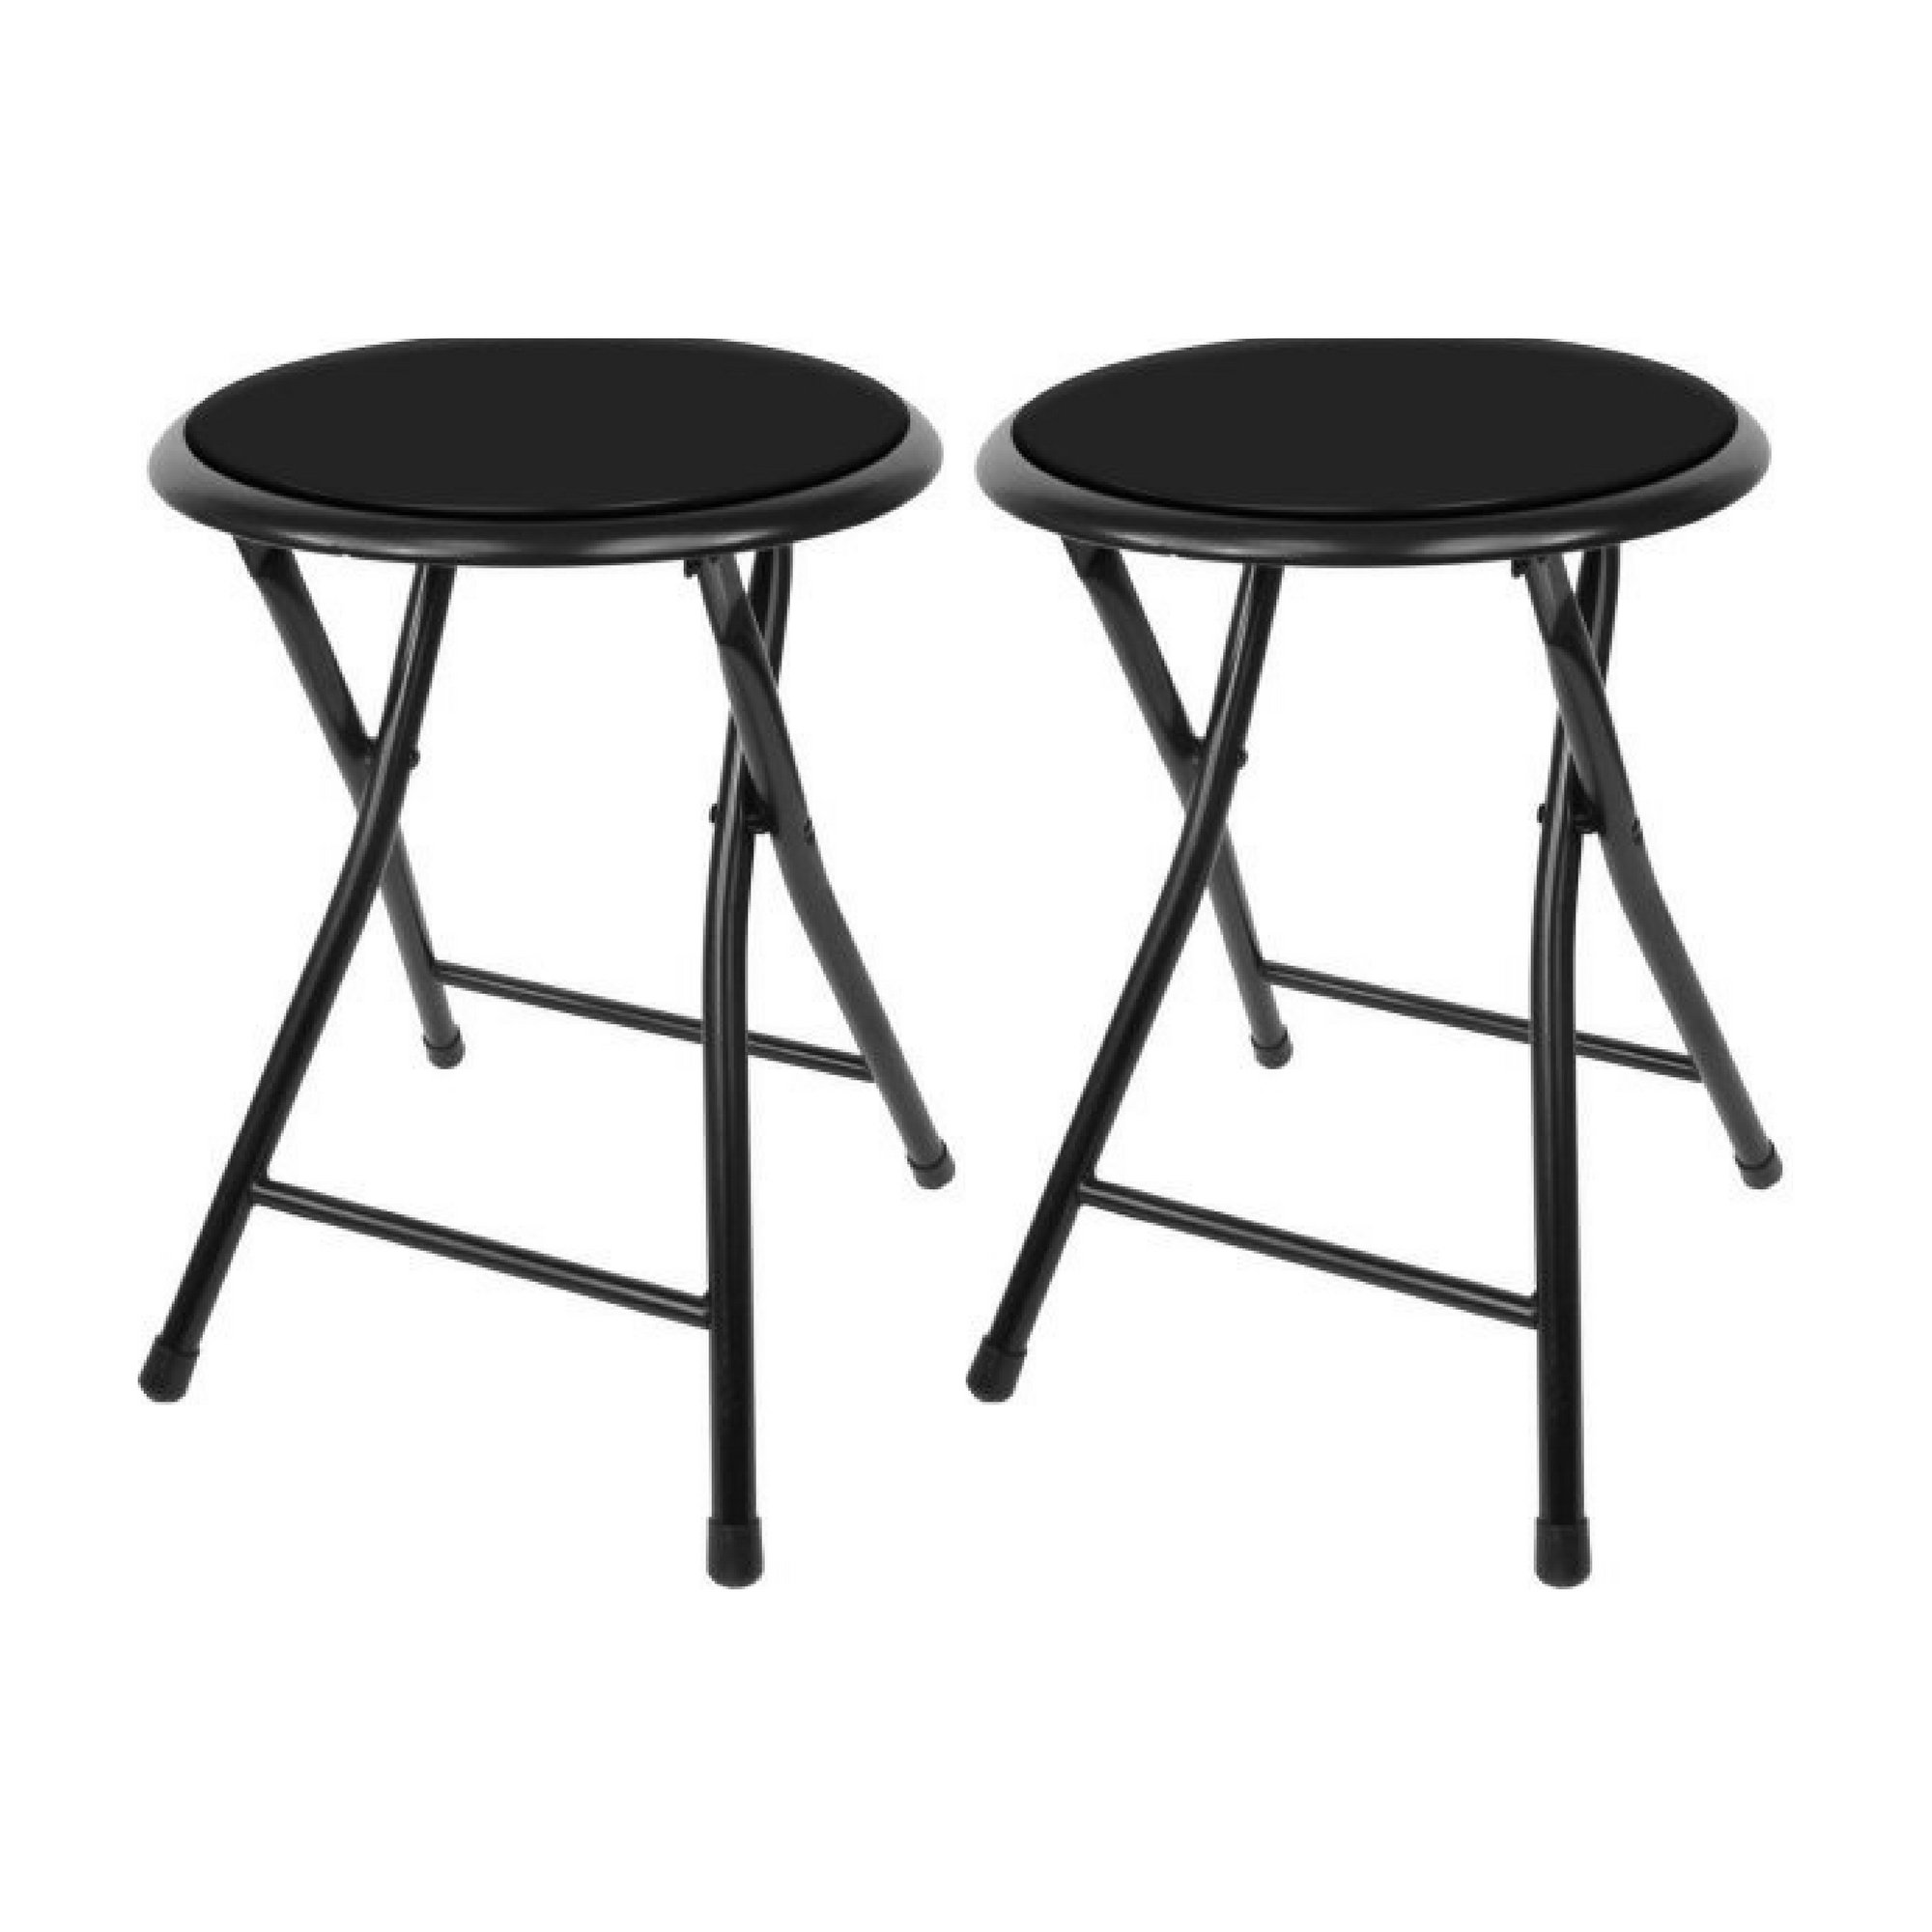 Trademark Home Collection 18'' Cushioned Folding Stool, Black - Set of two